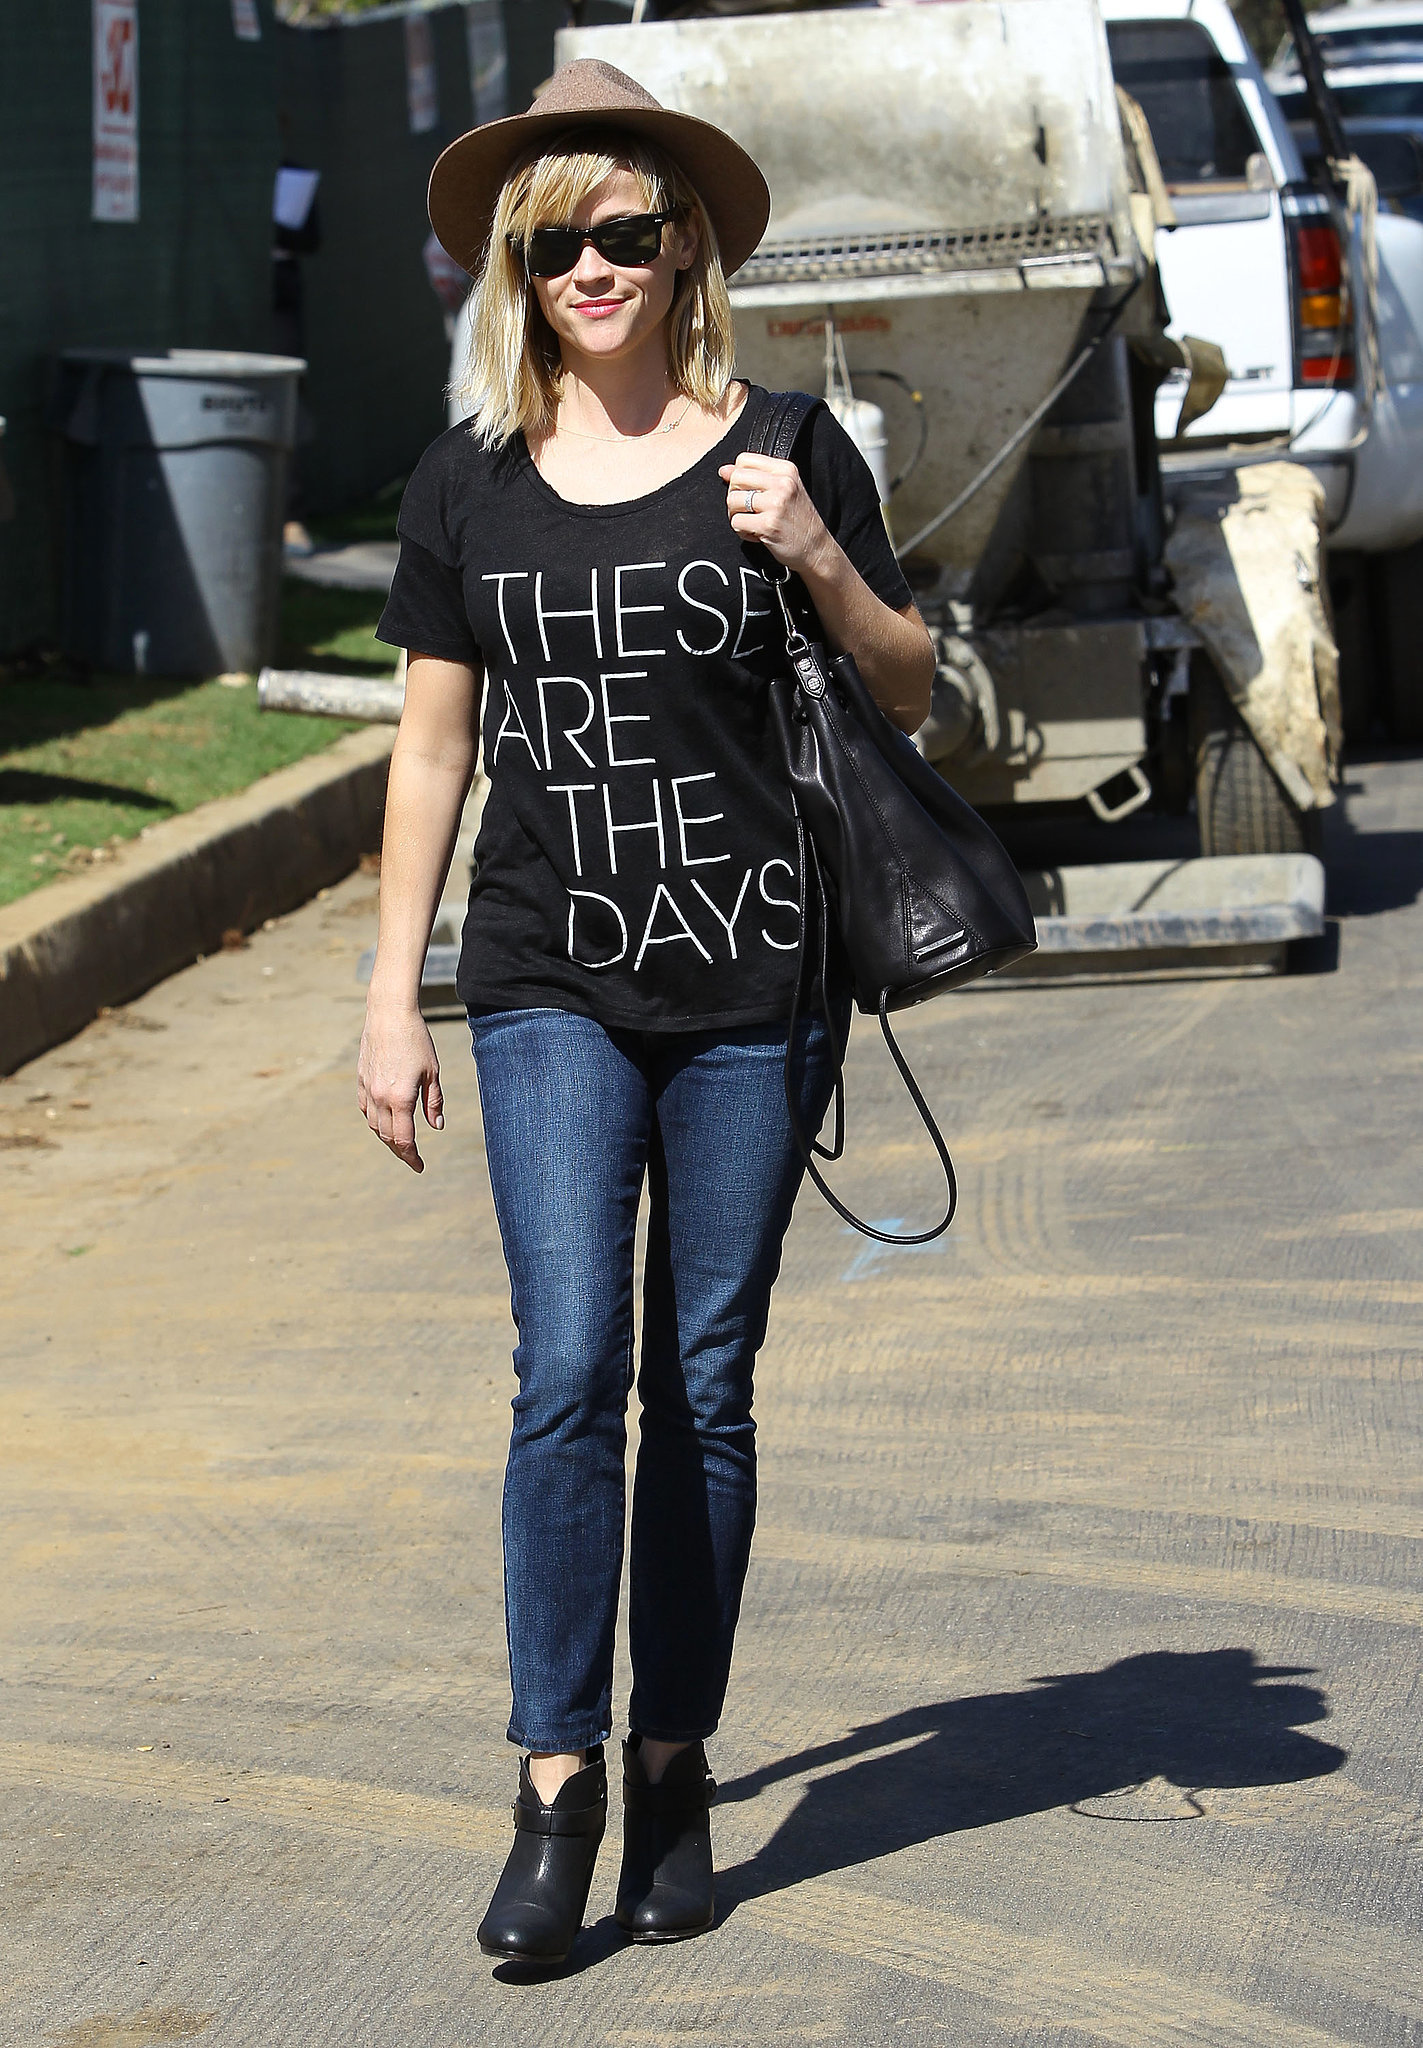 """Reese Witherspoon in J.Crew """"These Are the Days"""" Tee"""